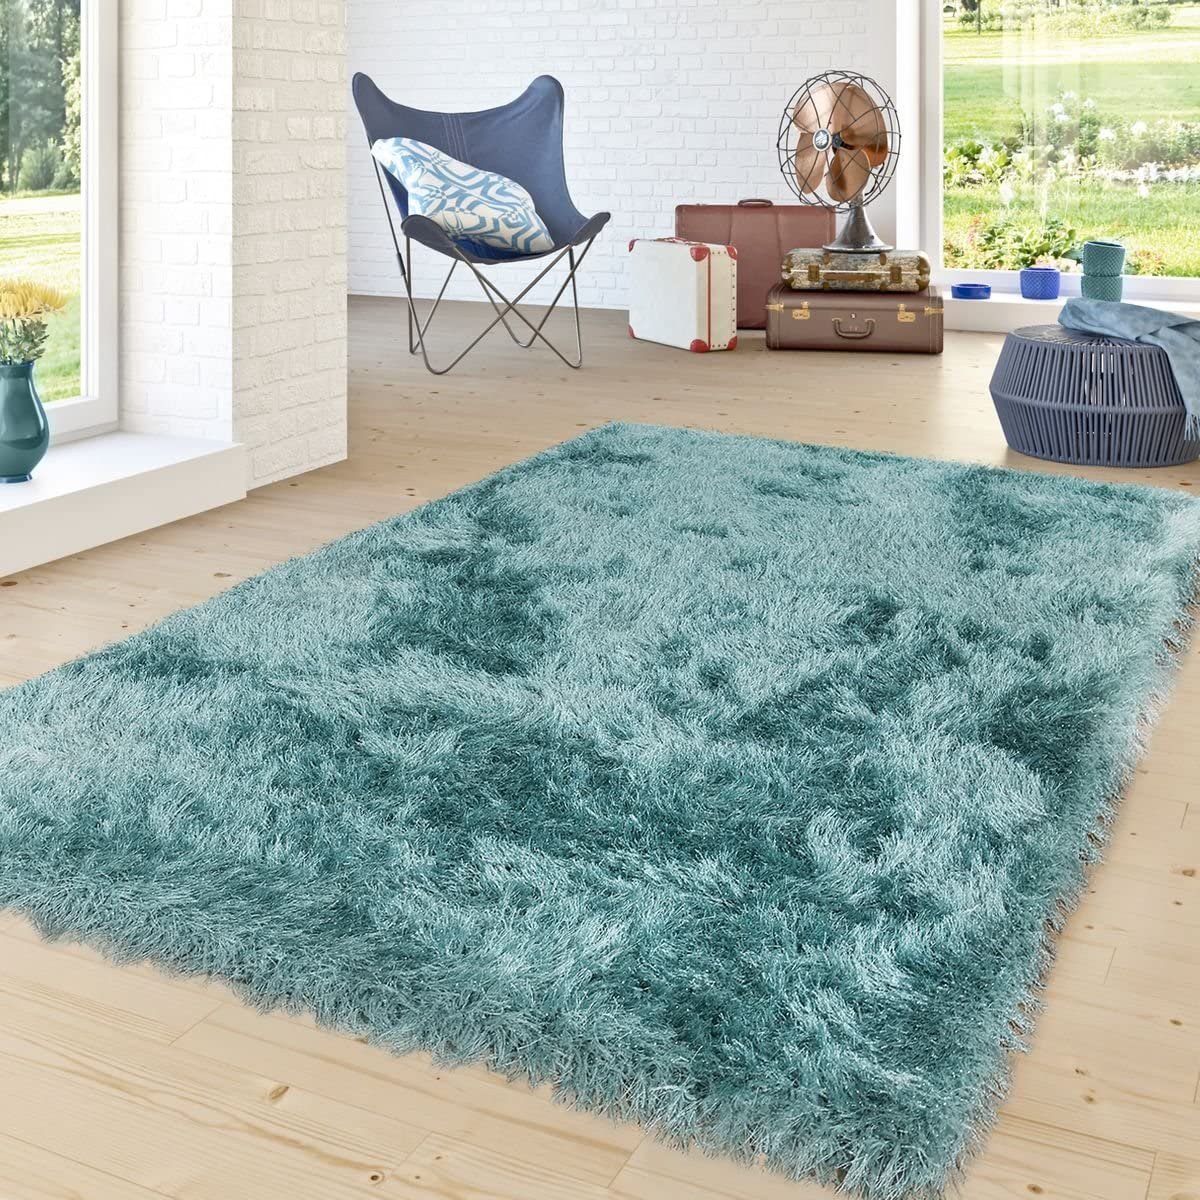 Paco Home Shag Rug High Pile in Turquoise Bedroom Living Room Fluffy Glossy Pastel Yarn, Size 5 3 x 7 7